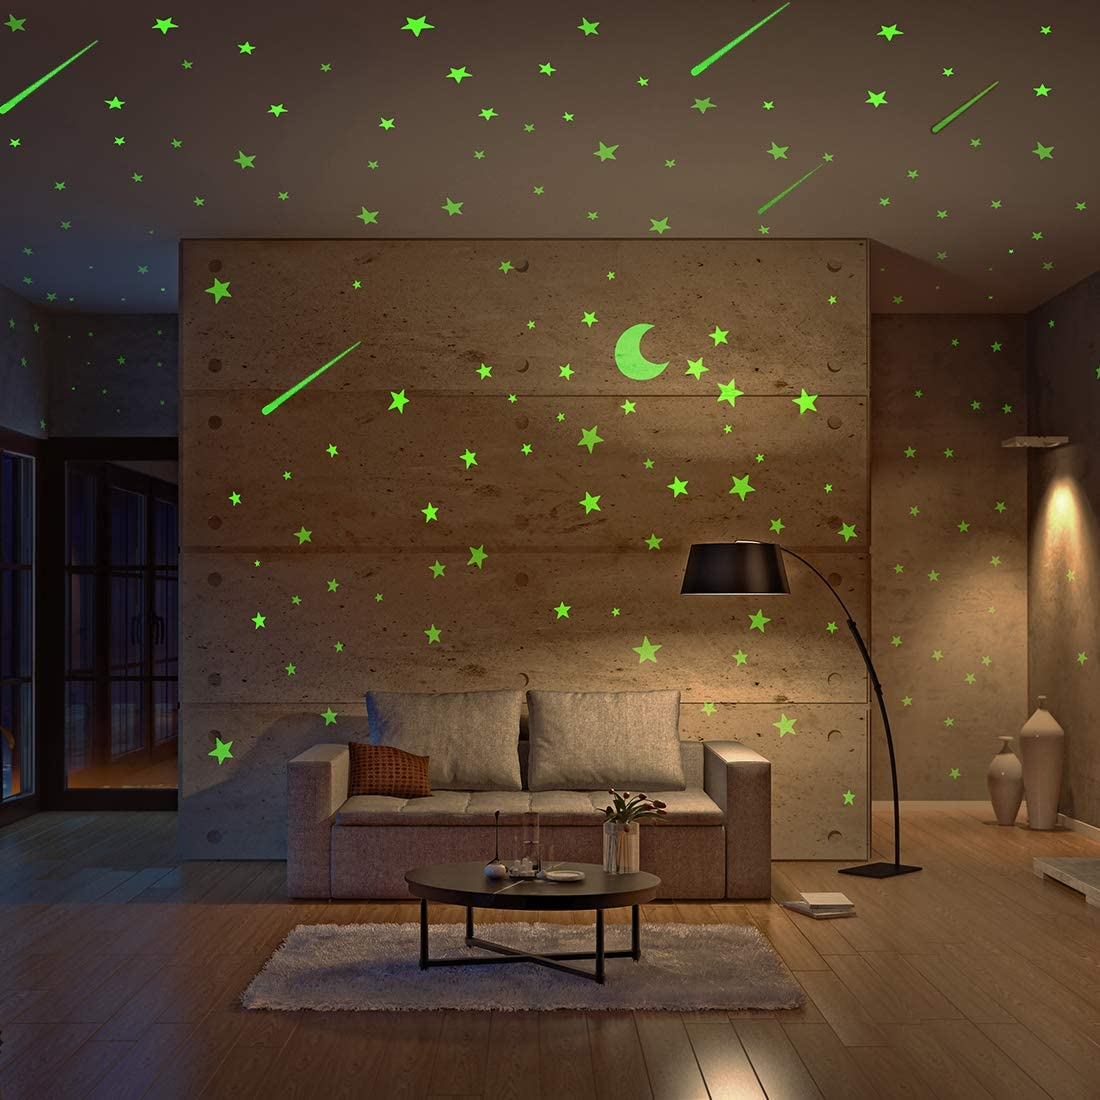 Realistic Glow in shop The Over item handling ☆ Dark and 500pcs Stars Moon